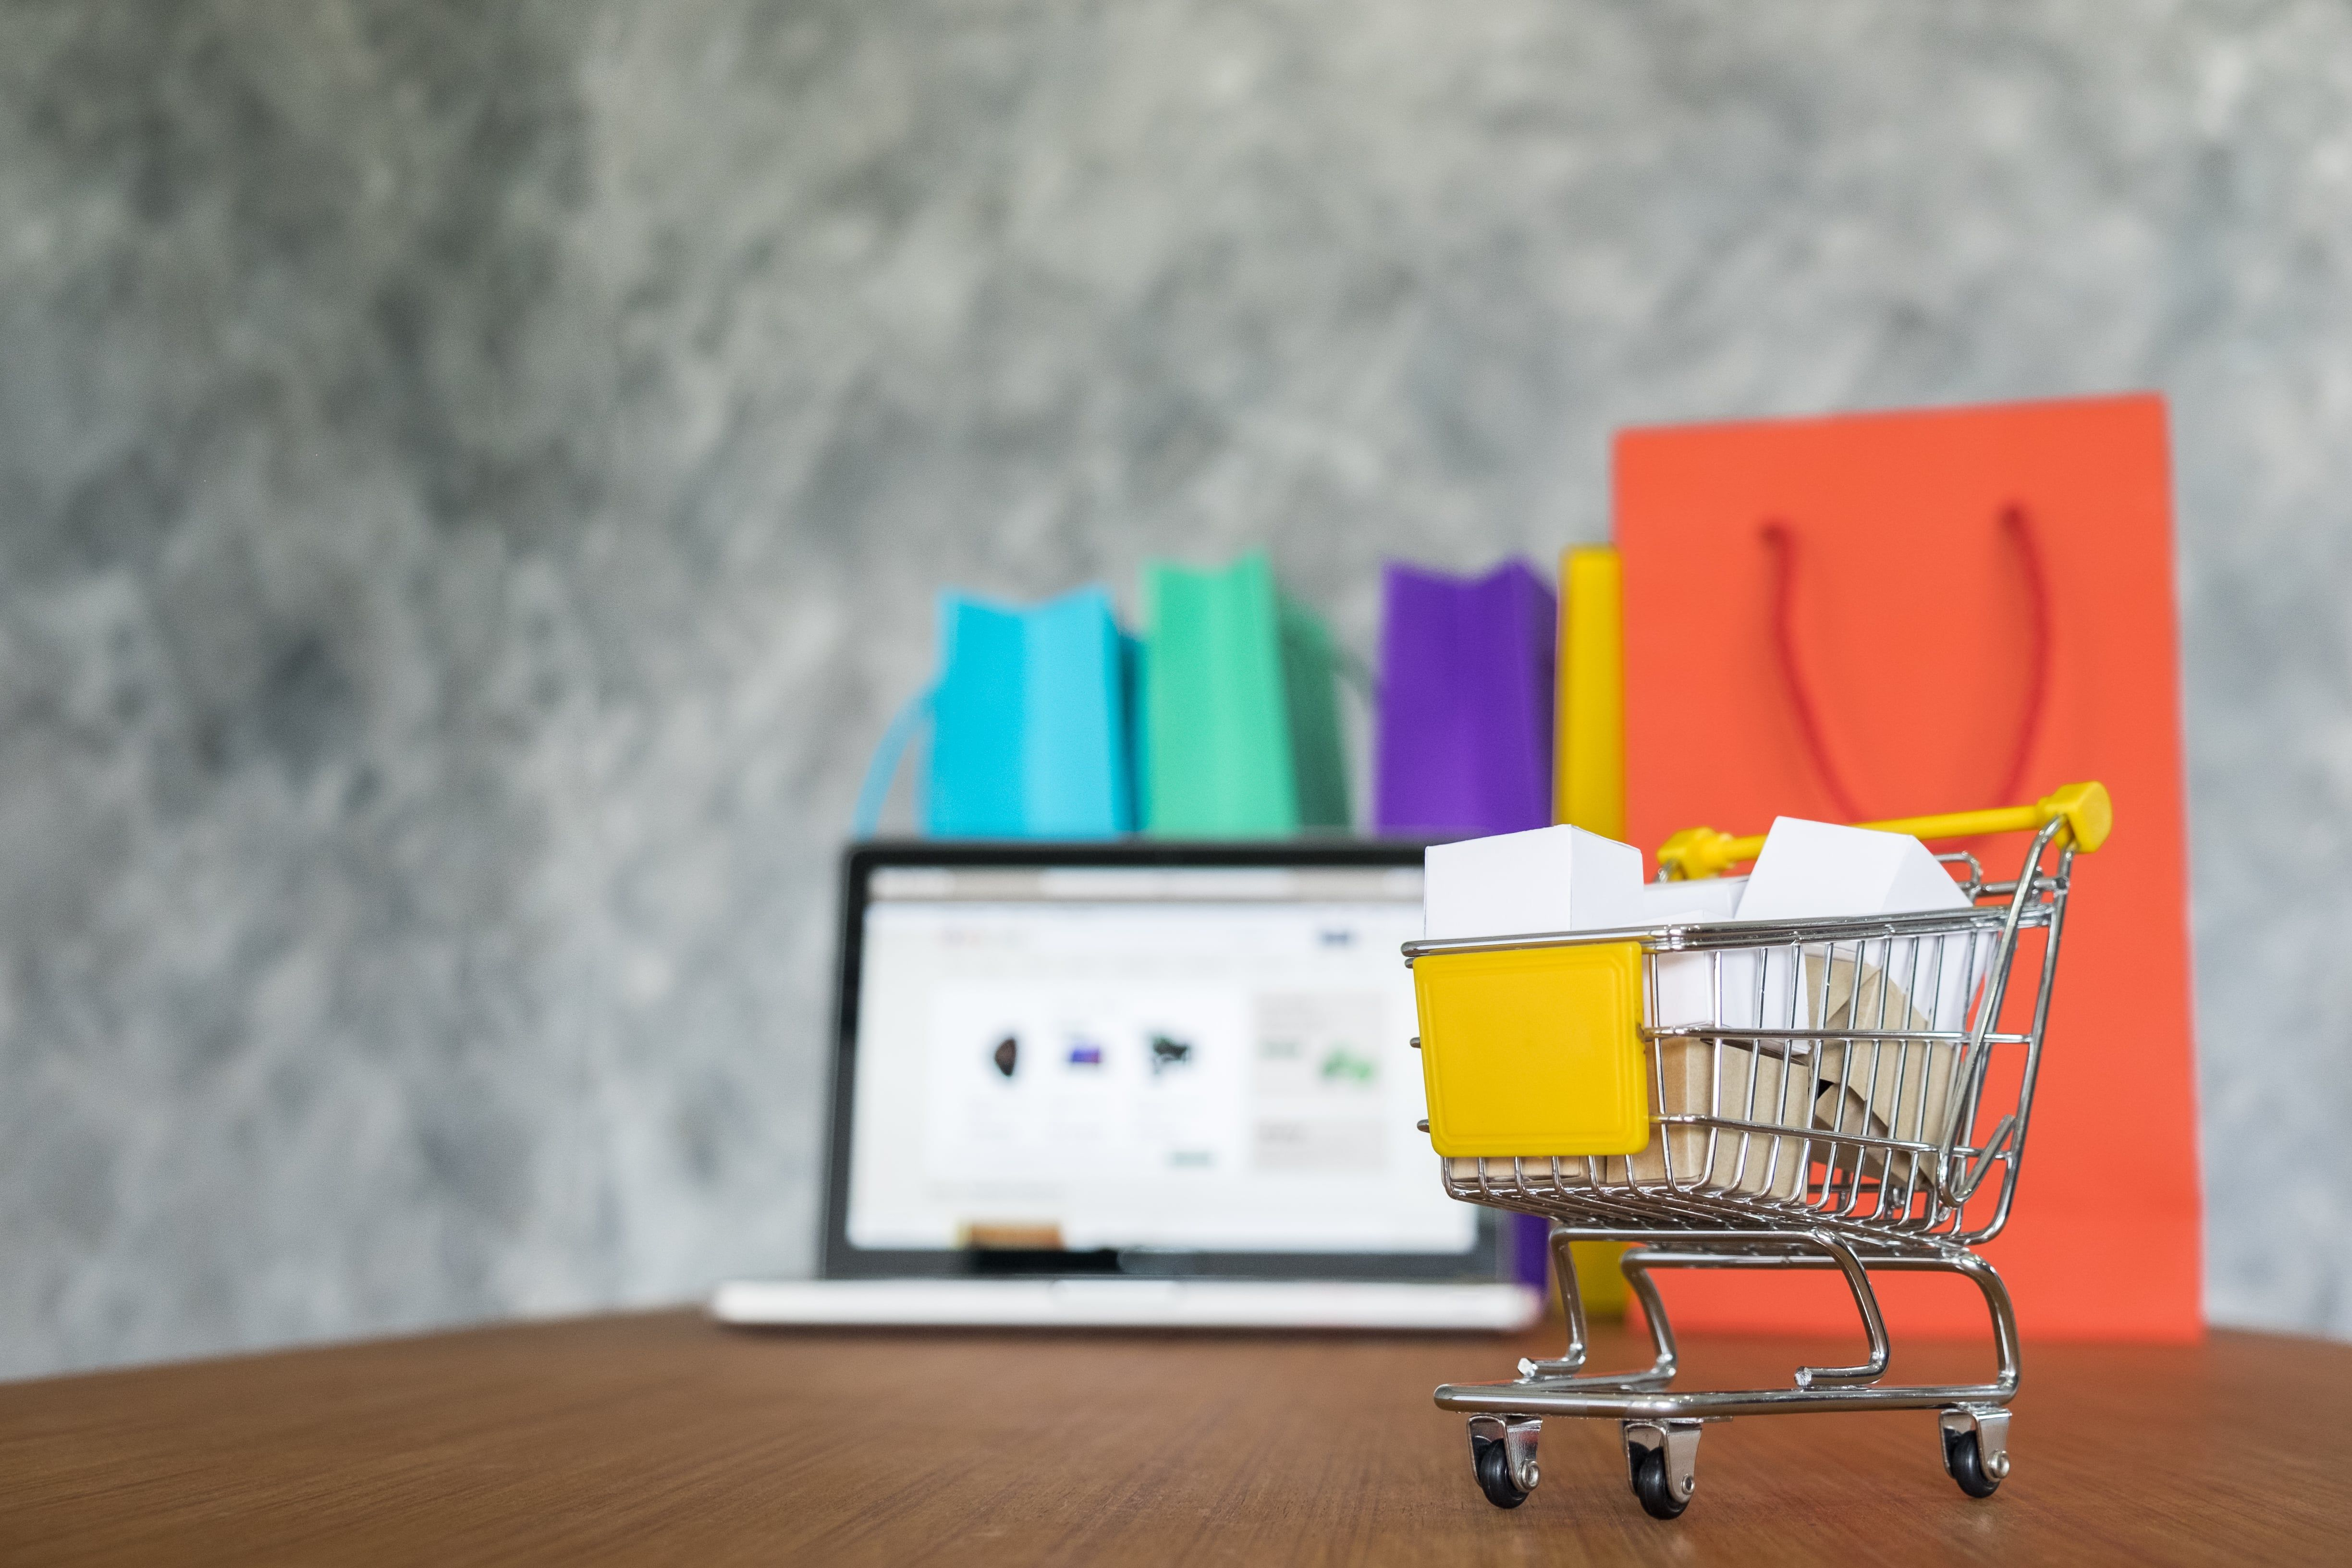 Indonesia's E-Commerce Perspective in 2019